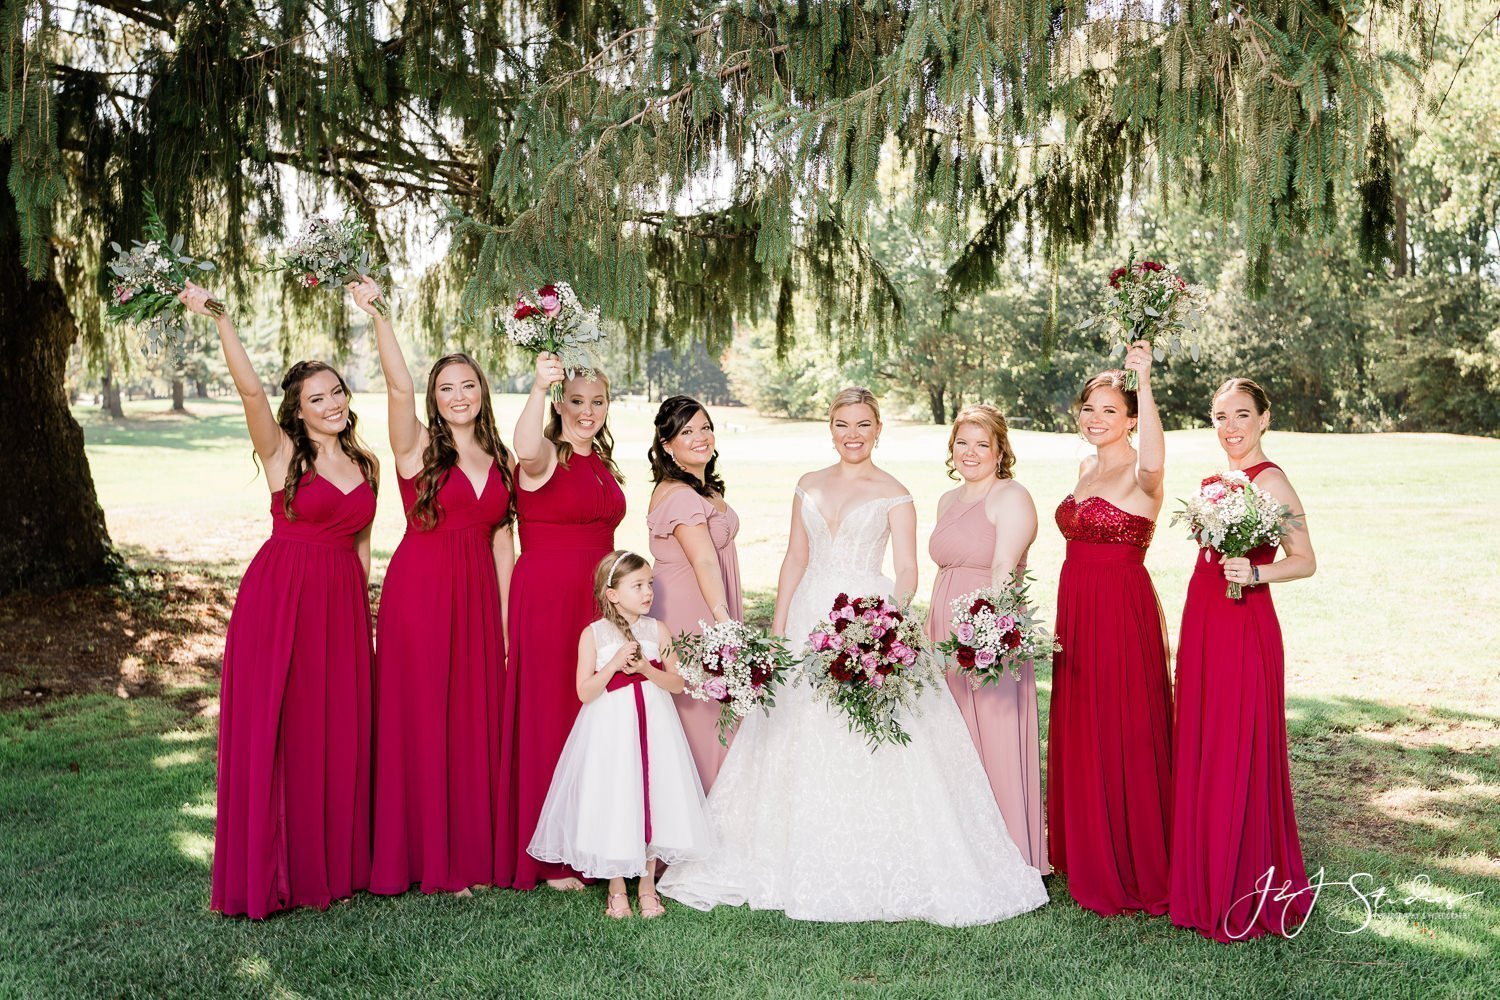 bride and bridal party in red dresses